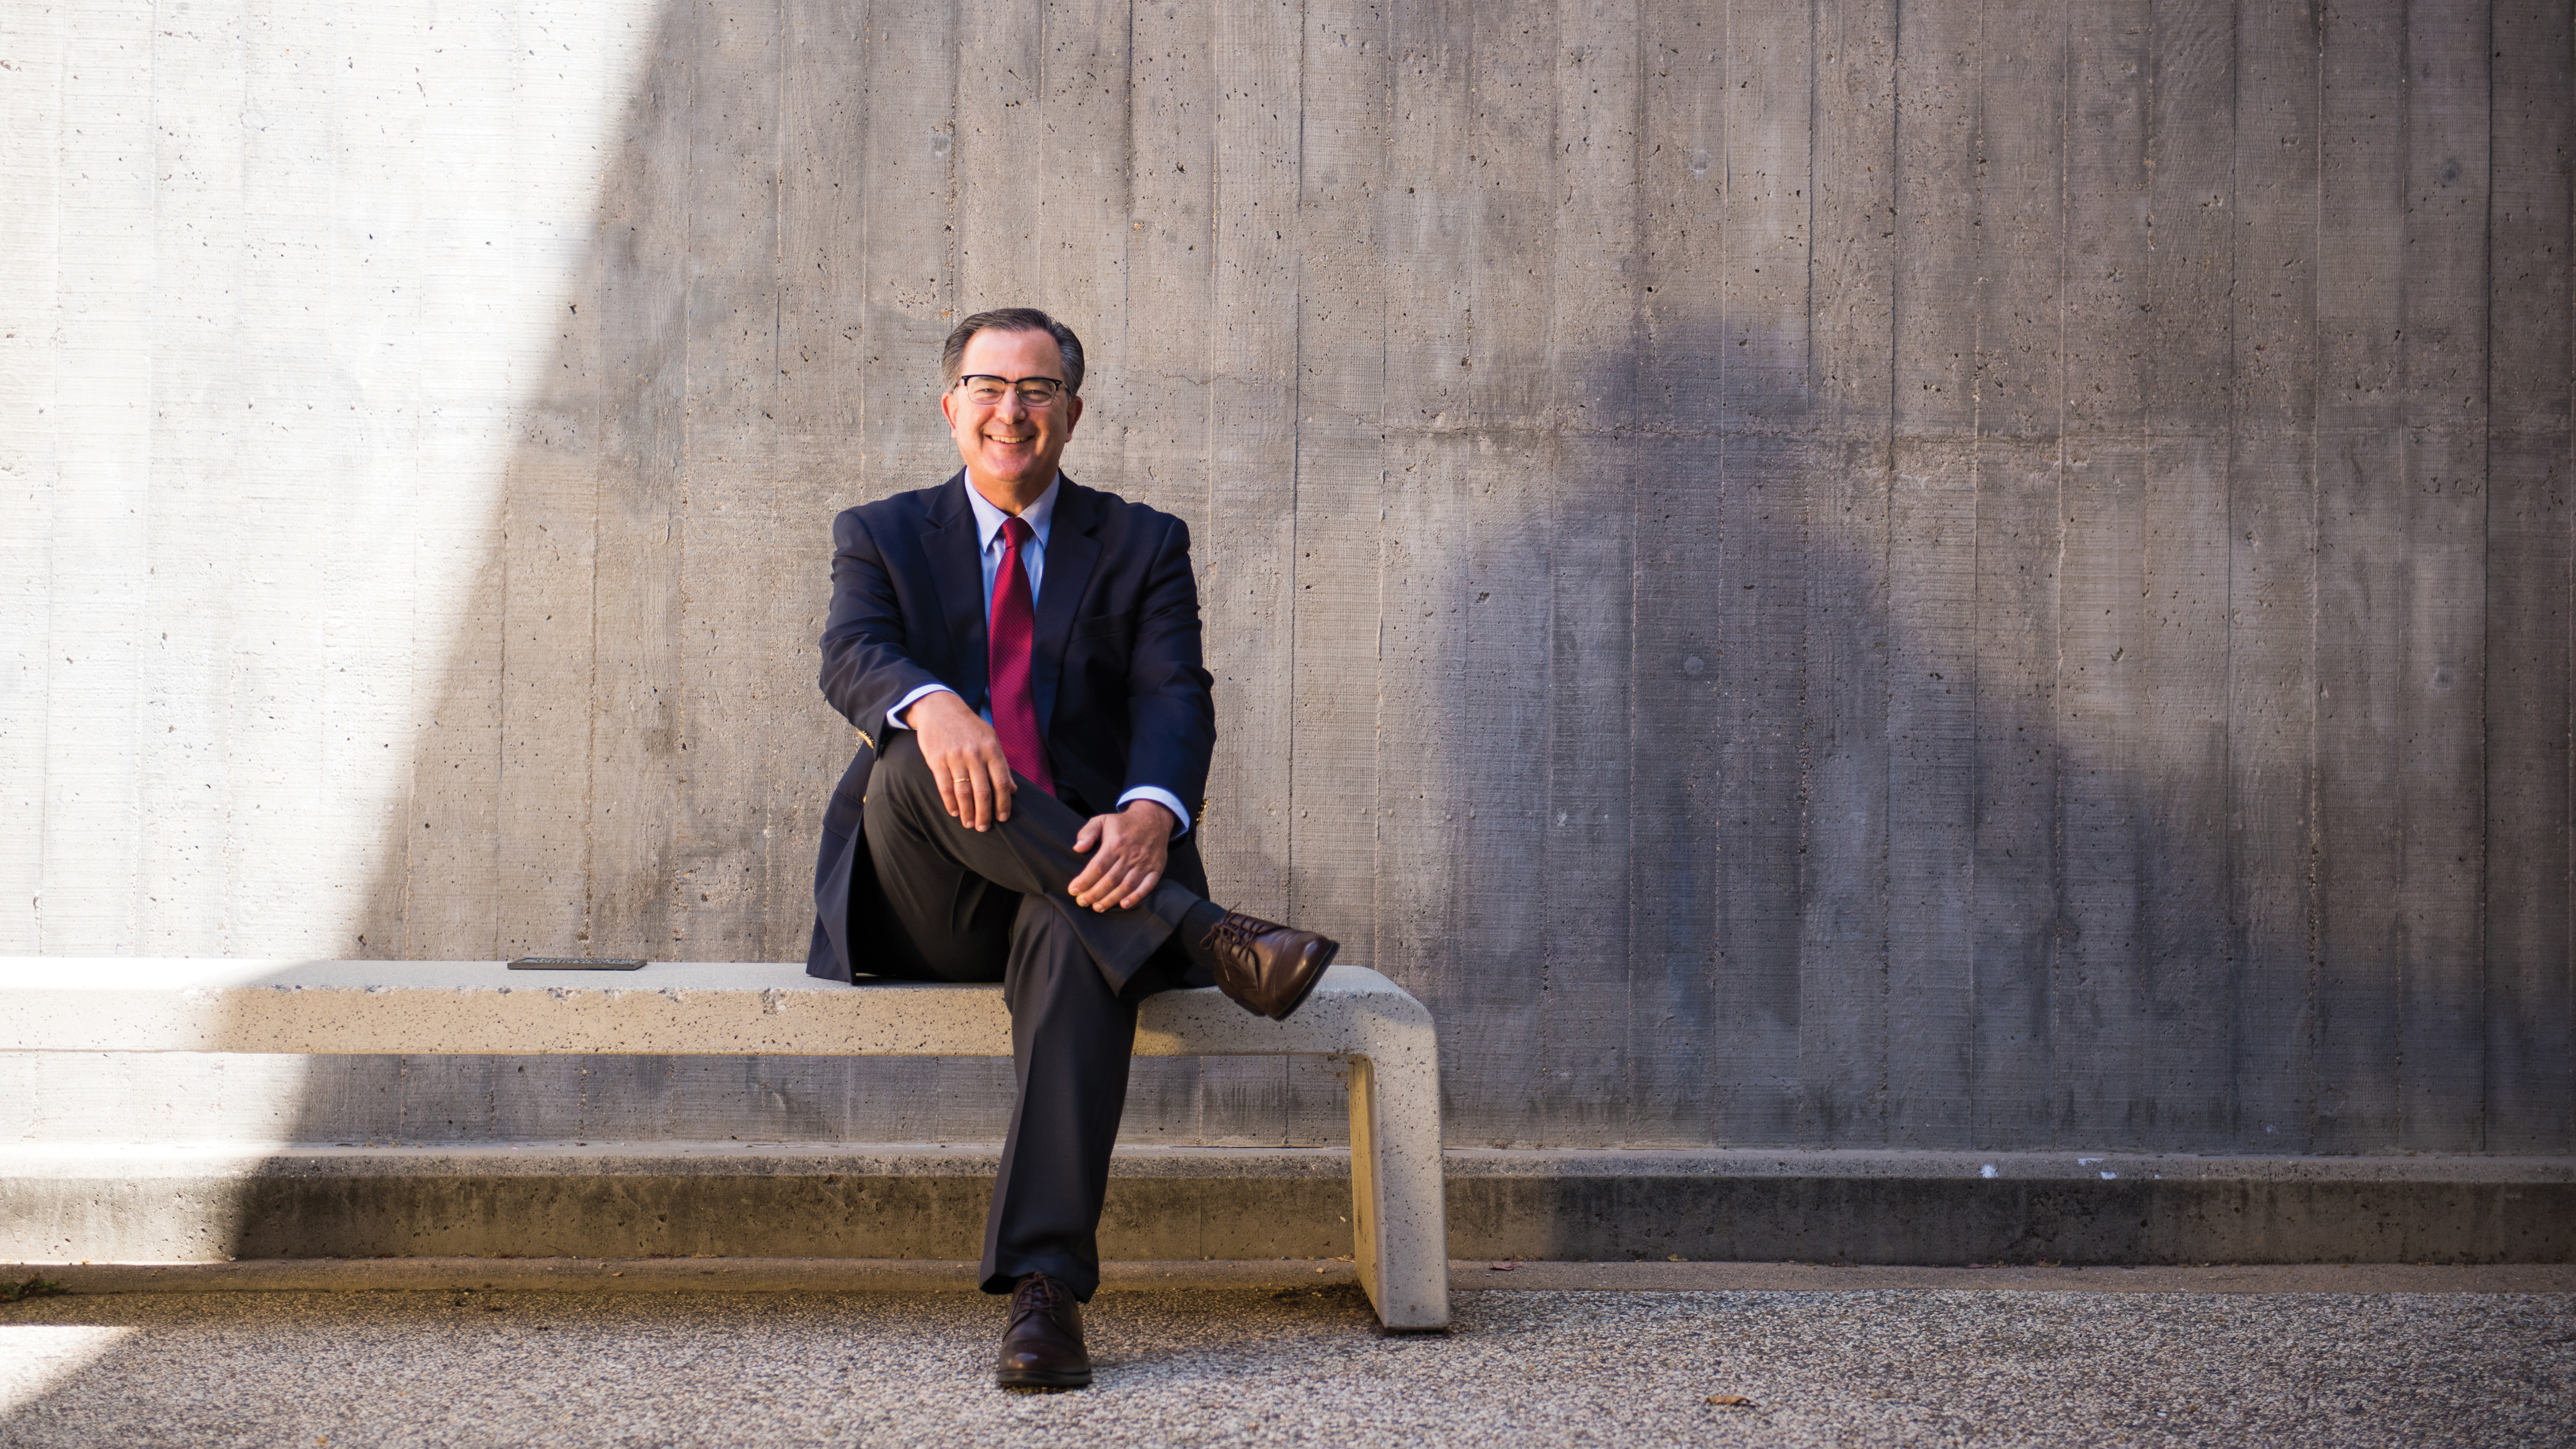 Dean Philip Williams, in a suit and tie, sits on a bench in front of a concrete wall.